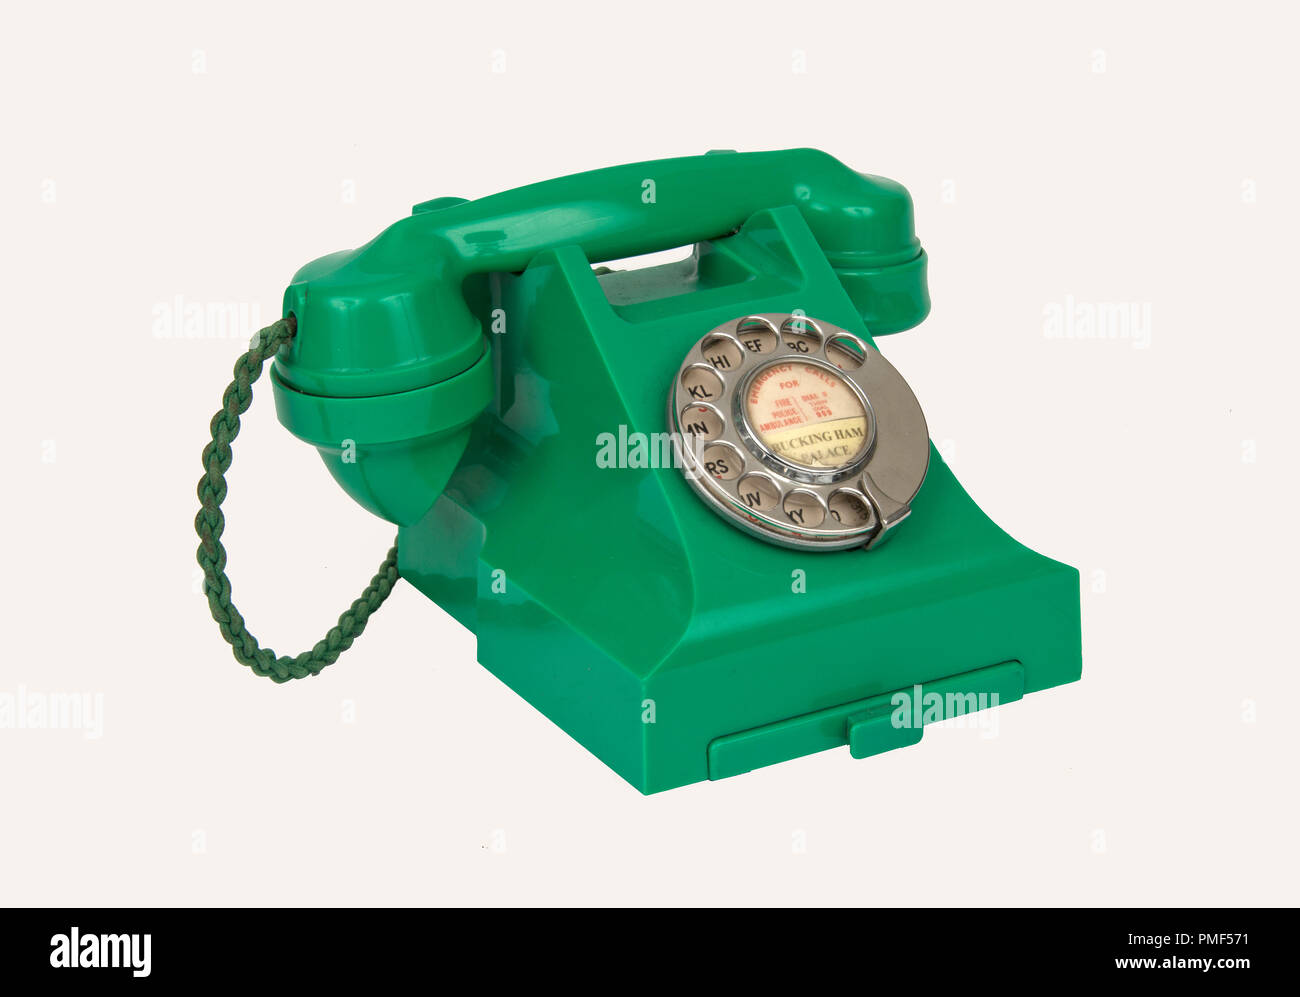 A green bakelite telephone of the 1950's - Stock Image